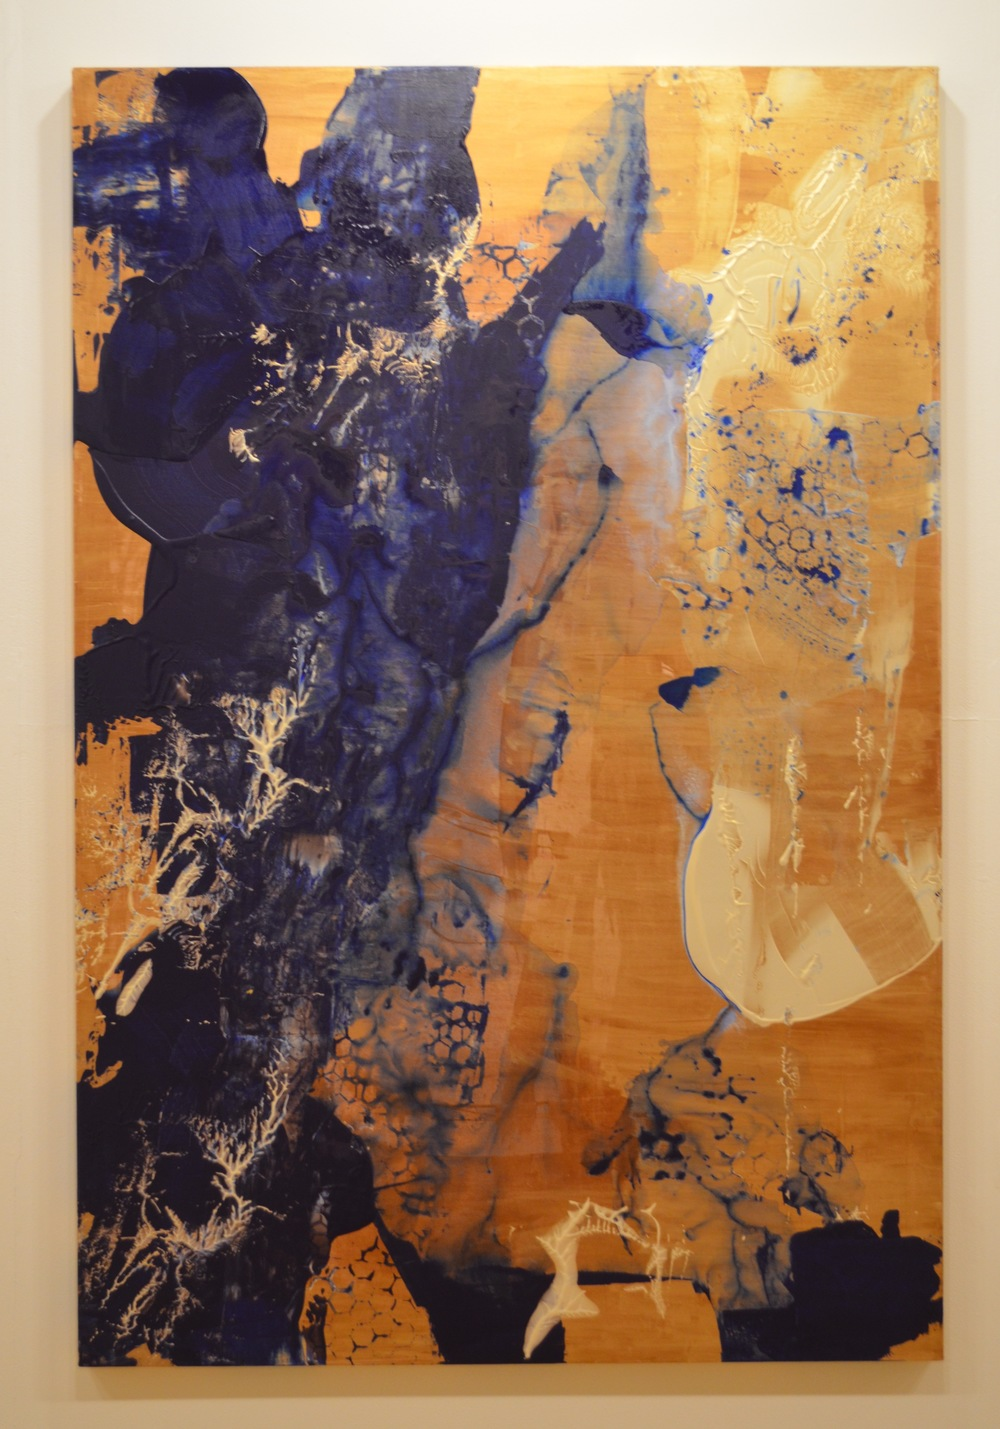 11. Subliminal Wash, Natasha Shoro, 72 x 48 inches, $6,500